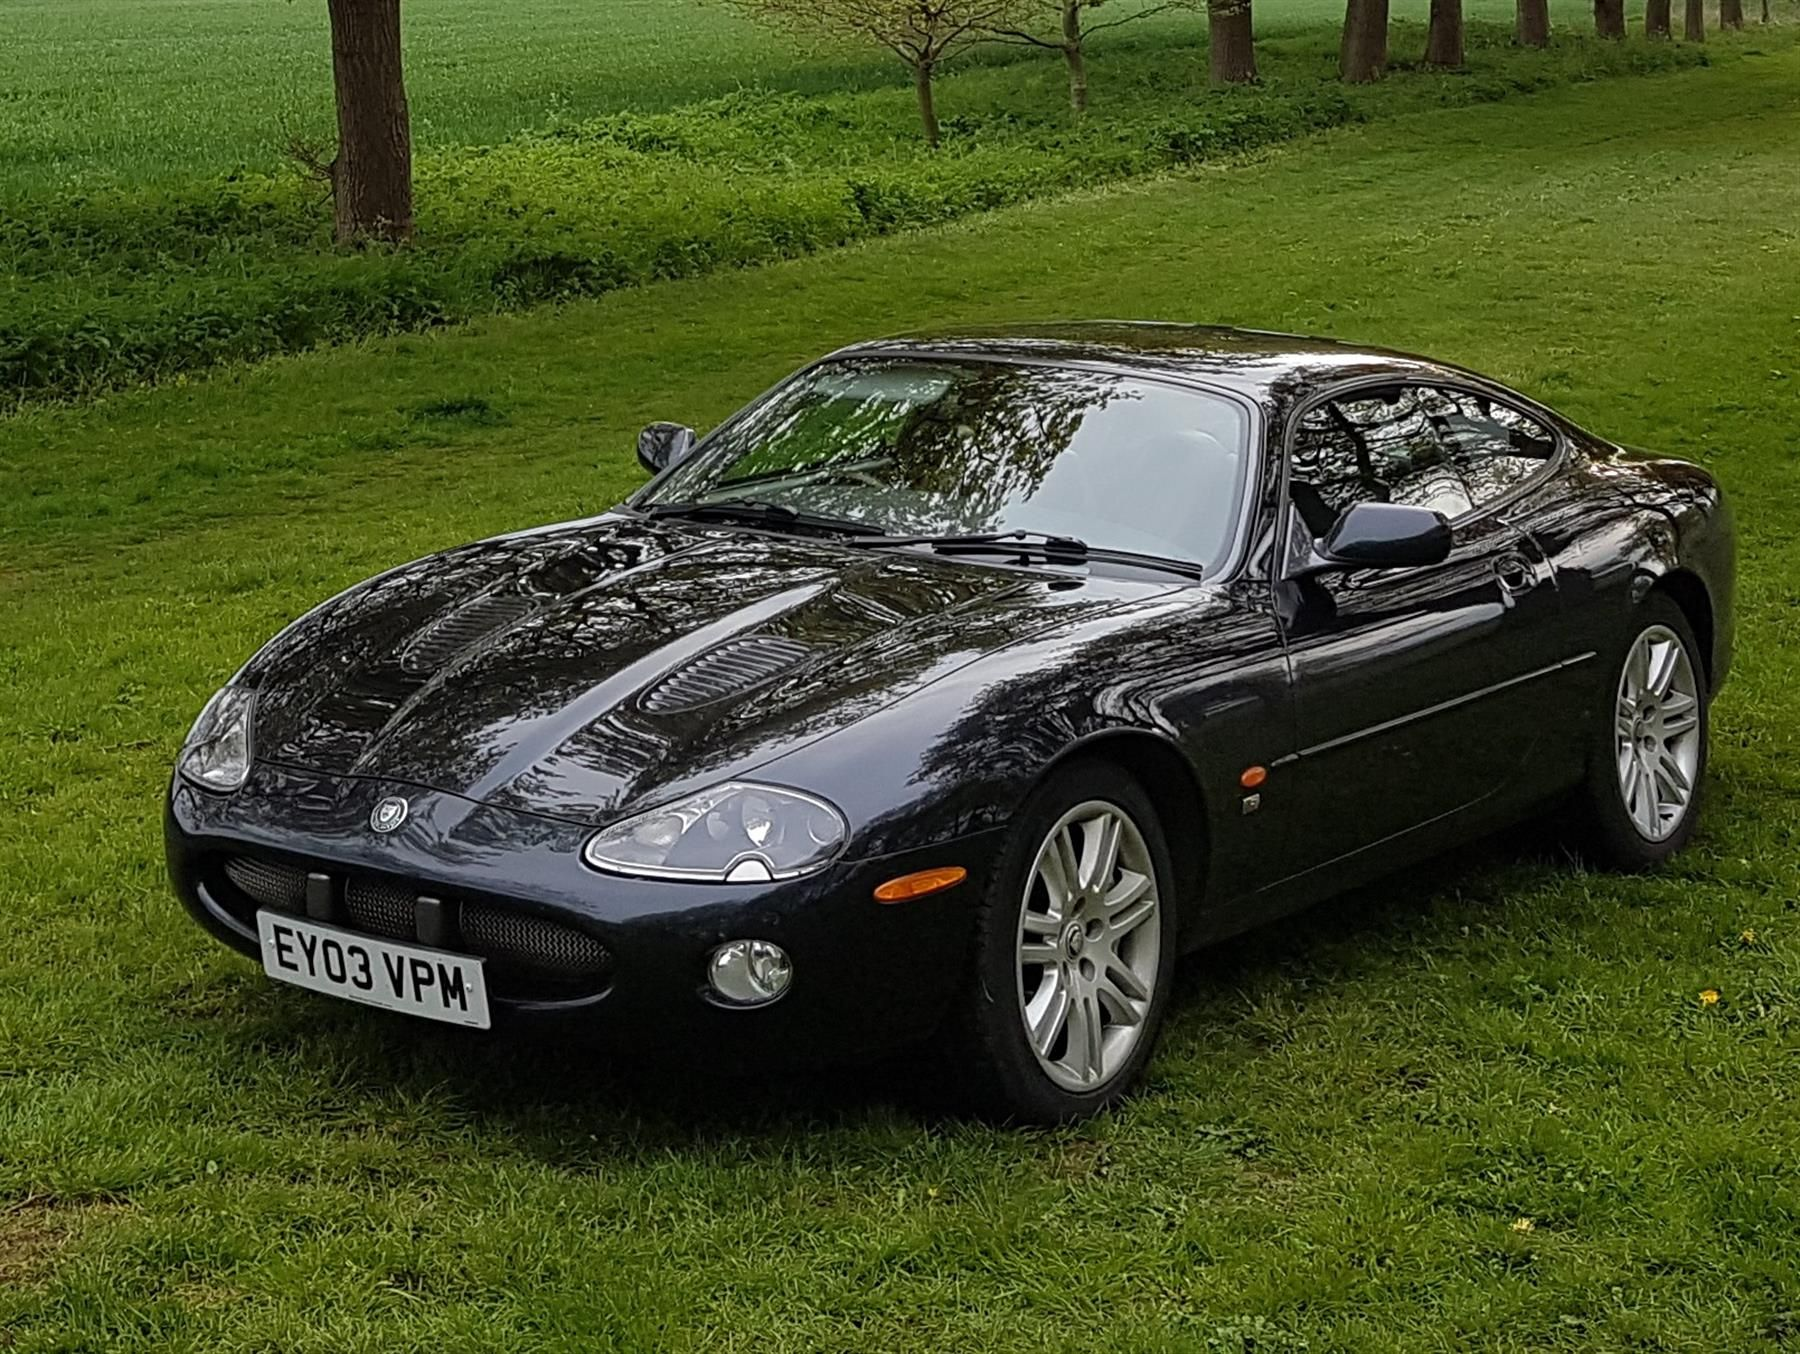 Used 2003 Jaguar XKR XKR COUPE for sale in